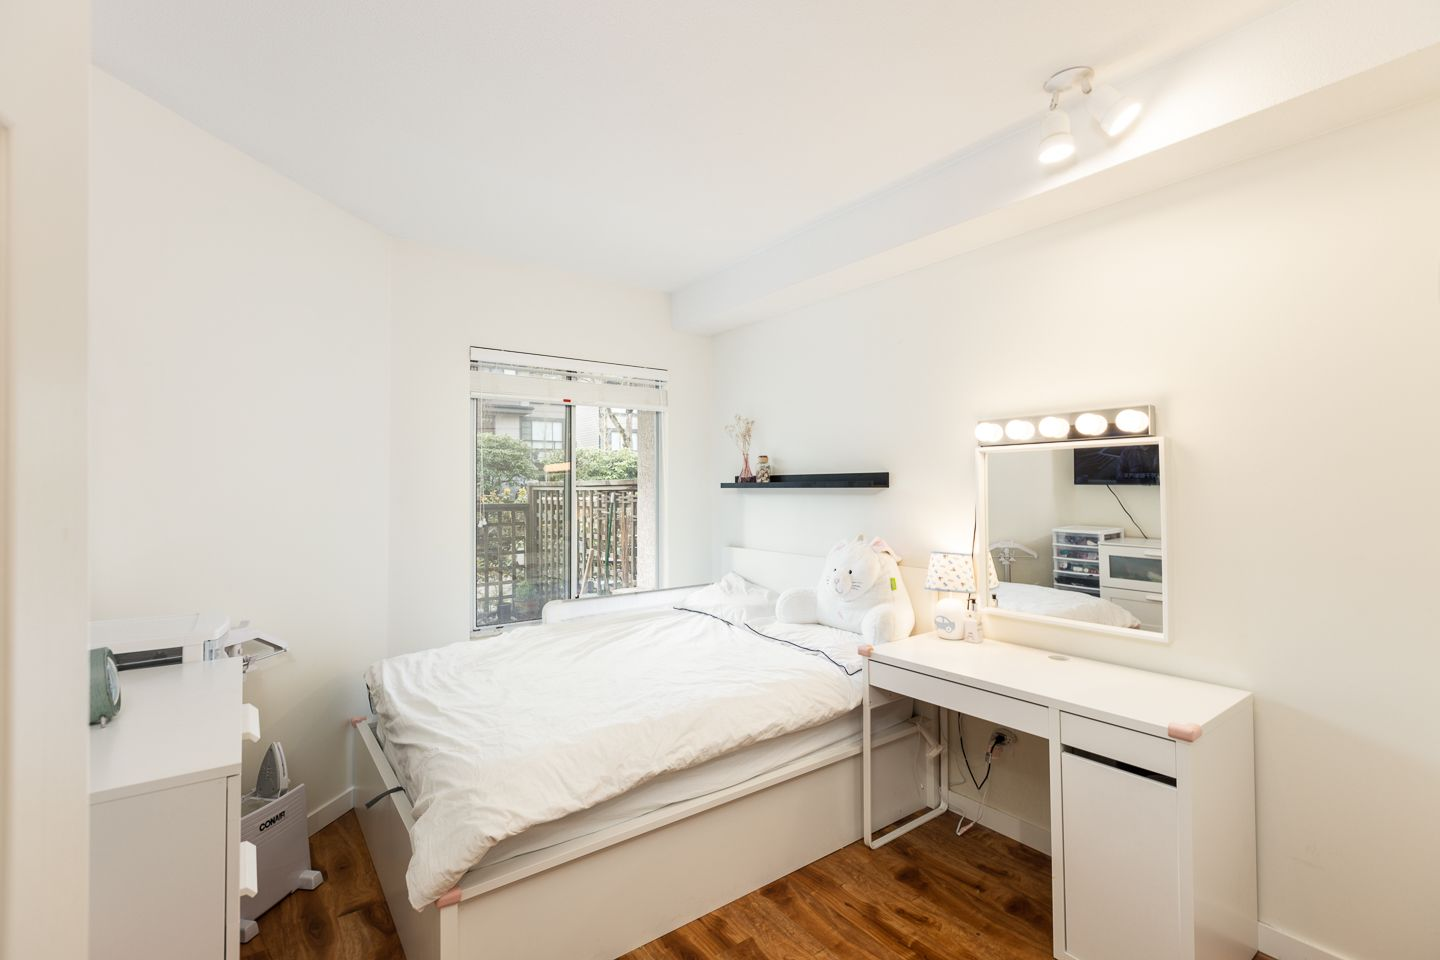 Photo 6: Photos: #8-3701 THURSTON ST in BURNABY: Central Park BS Condo for sale (Burnaby South)  : MLS®# R2572861